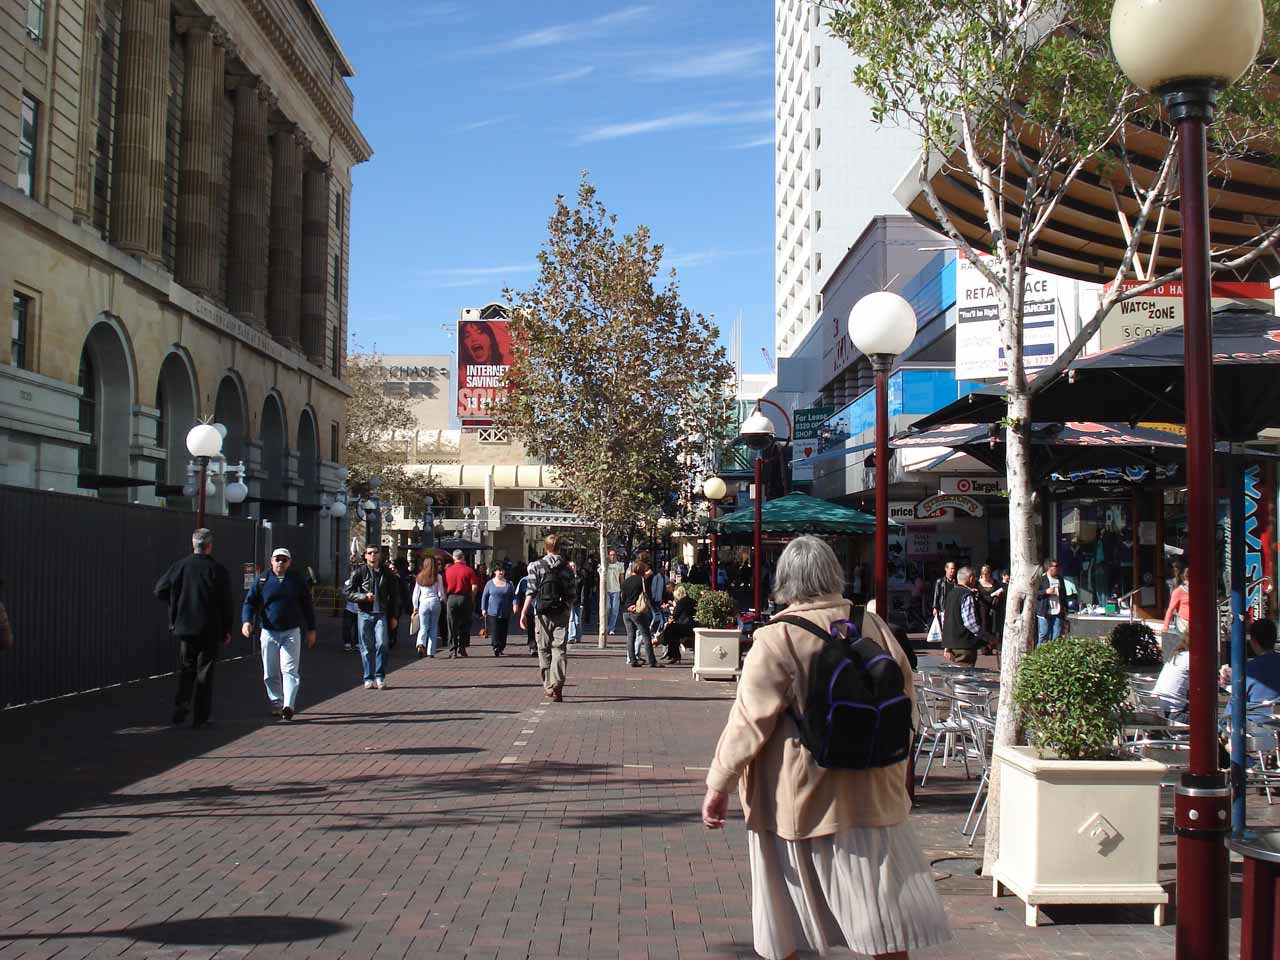 Walking about in the shopping arcade of the Perth CBD